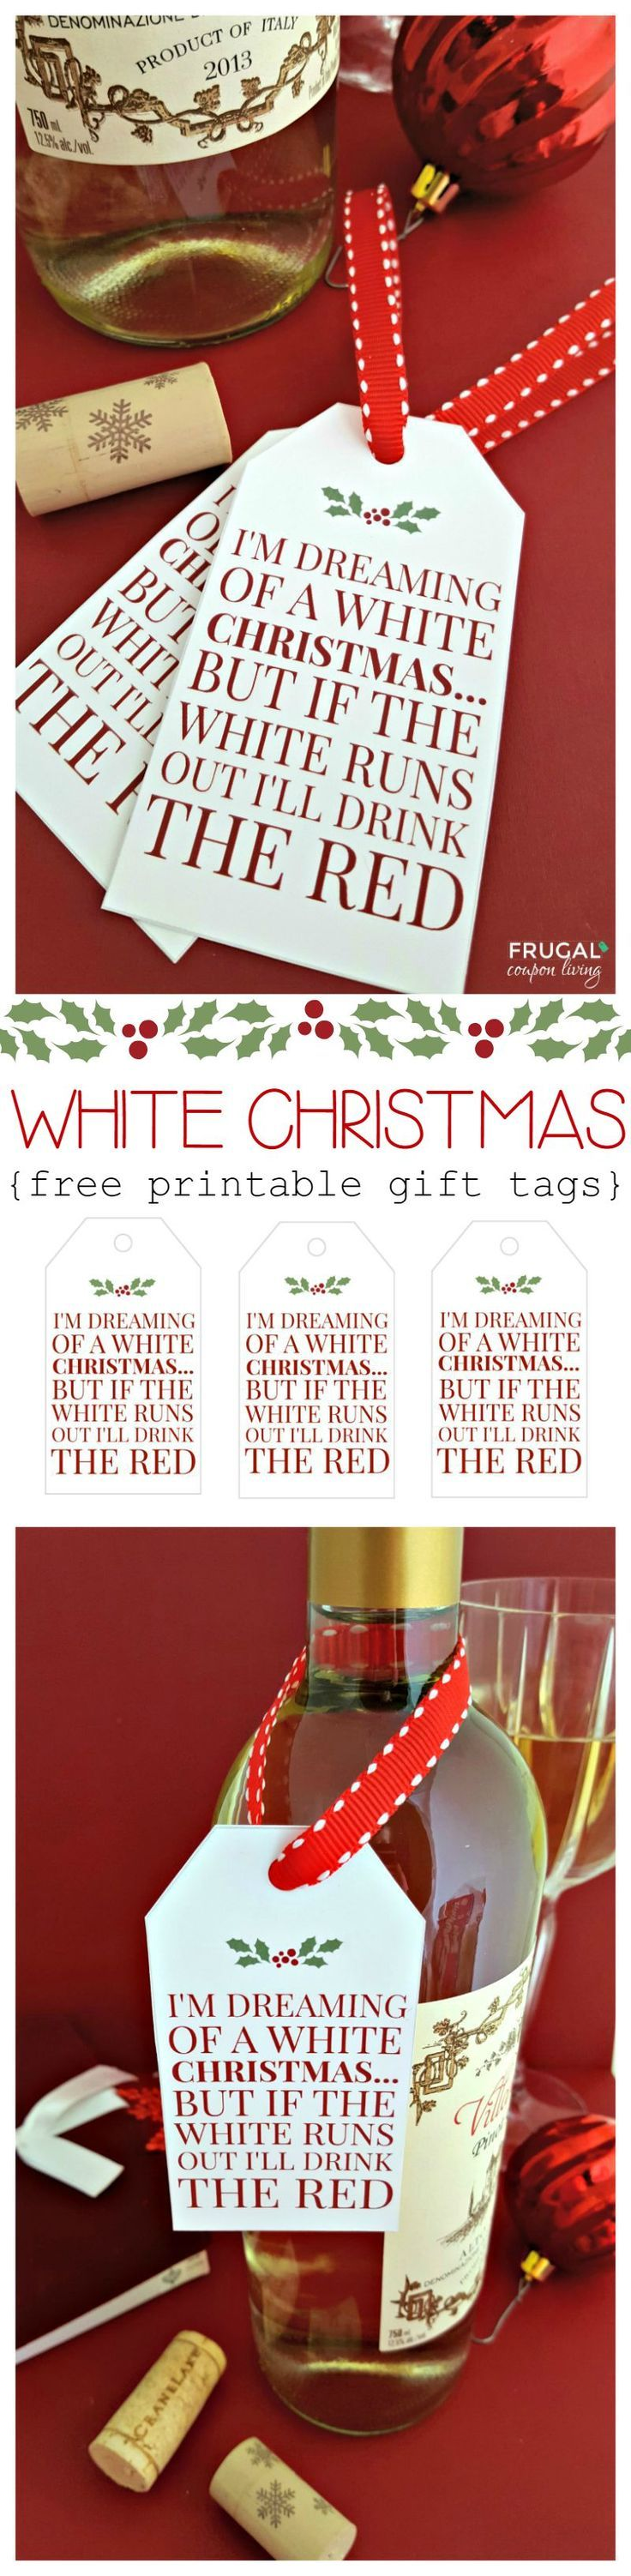 Frugal Coupon Living's White Christmas FREE Beverage Printable Tag. Great for a holiday housewarming or hostess gift idea. #christmas #printable #winelable #freeprintable